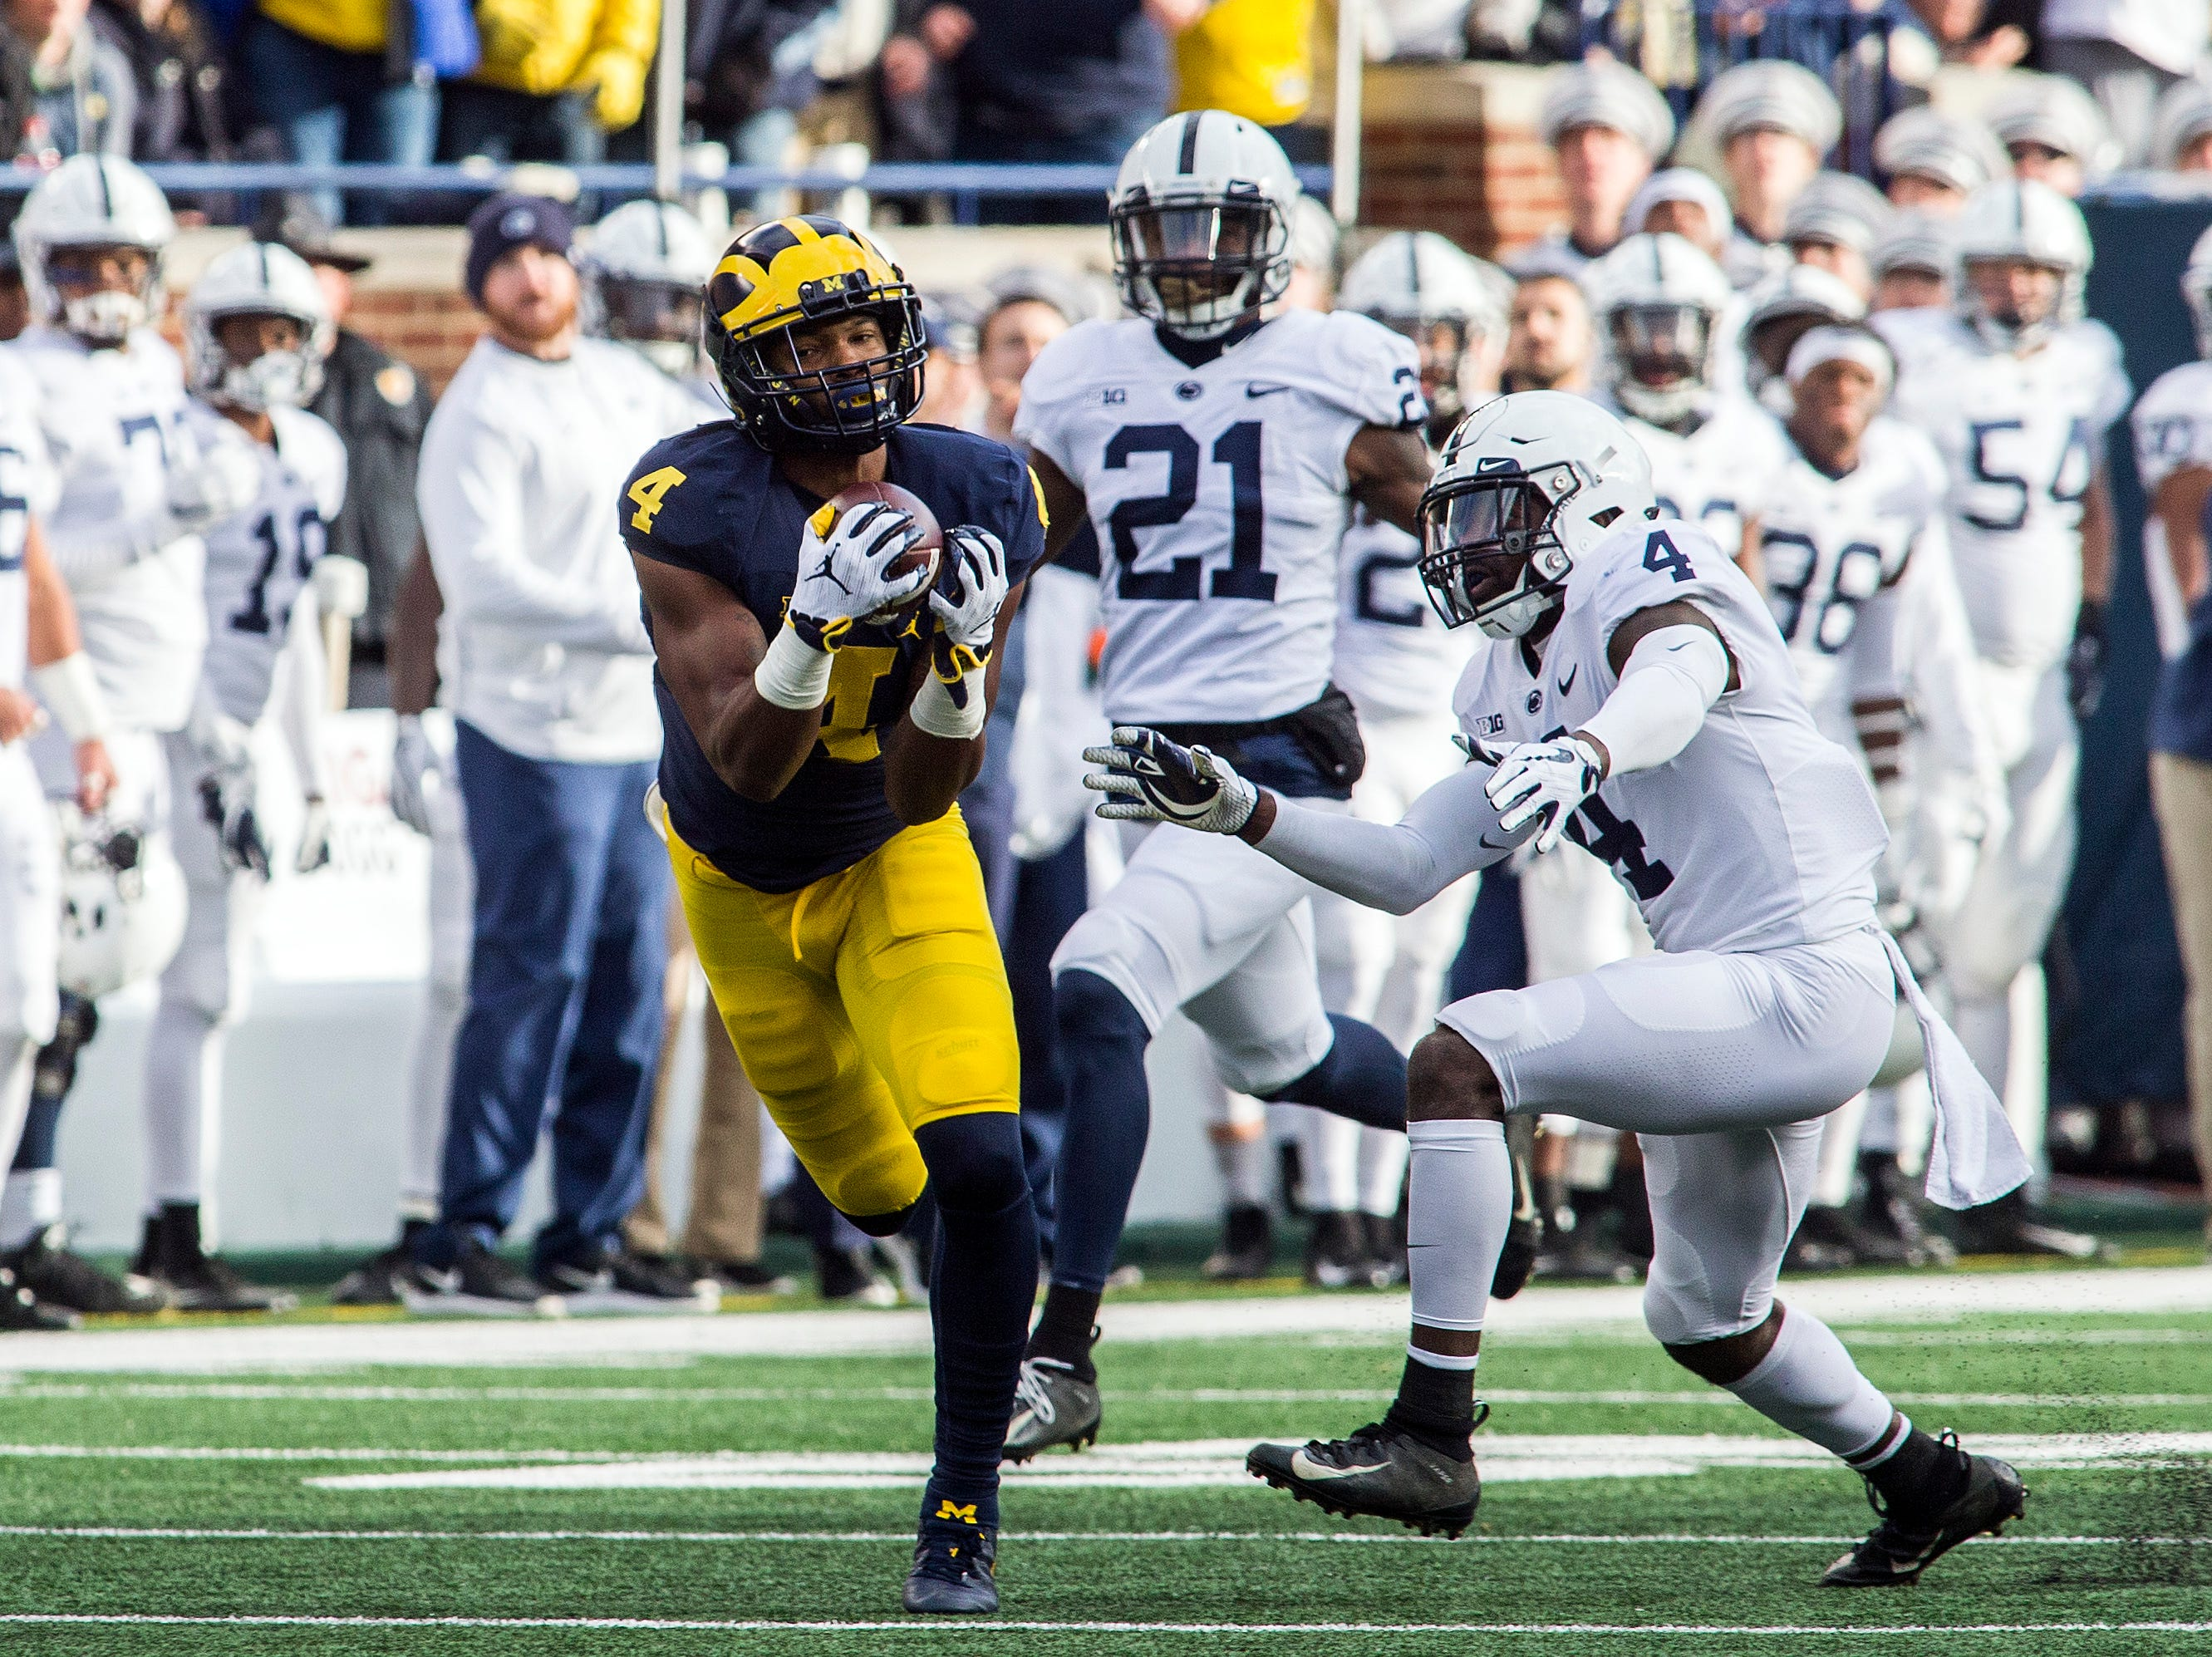 Michigan wide receiver Nico Collins, left, makes a 47-yard reception, defended by Penn State safety Nick Scott (4) in the second quarter of an NCAA college football game in Ann Arbor, Mich., Saturday, Nov. 3, 2018. (AP Photo/Tony Ding)